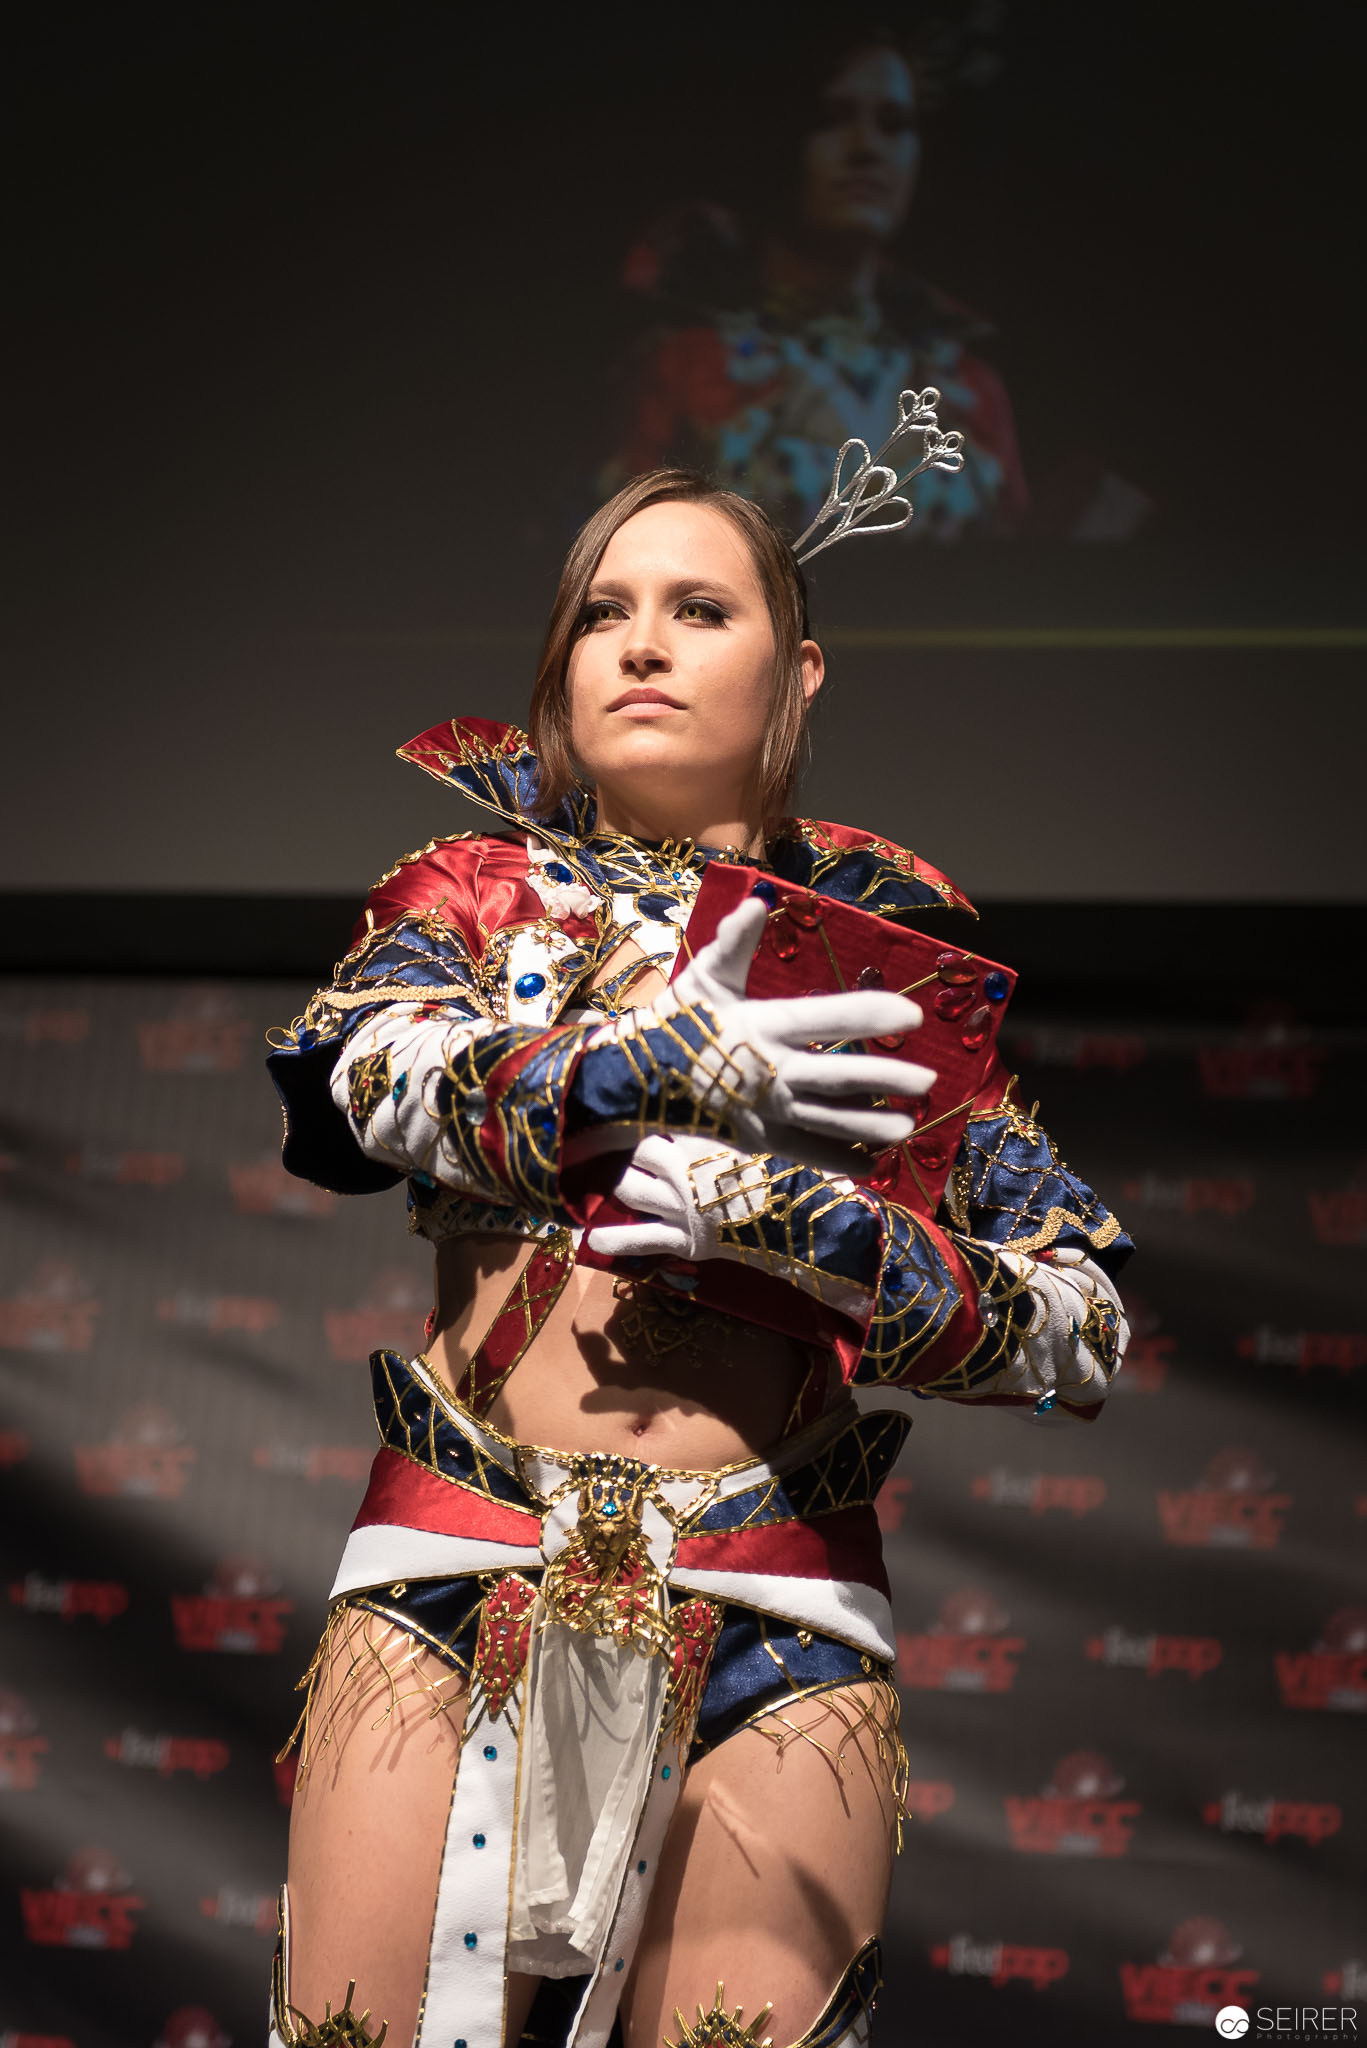 Human Mage from Lineage 2 / Needlework Cosplay: Haylin